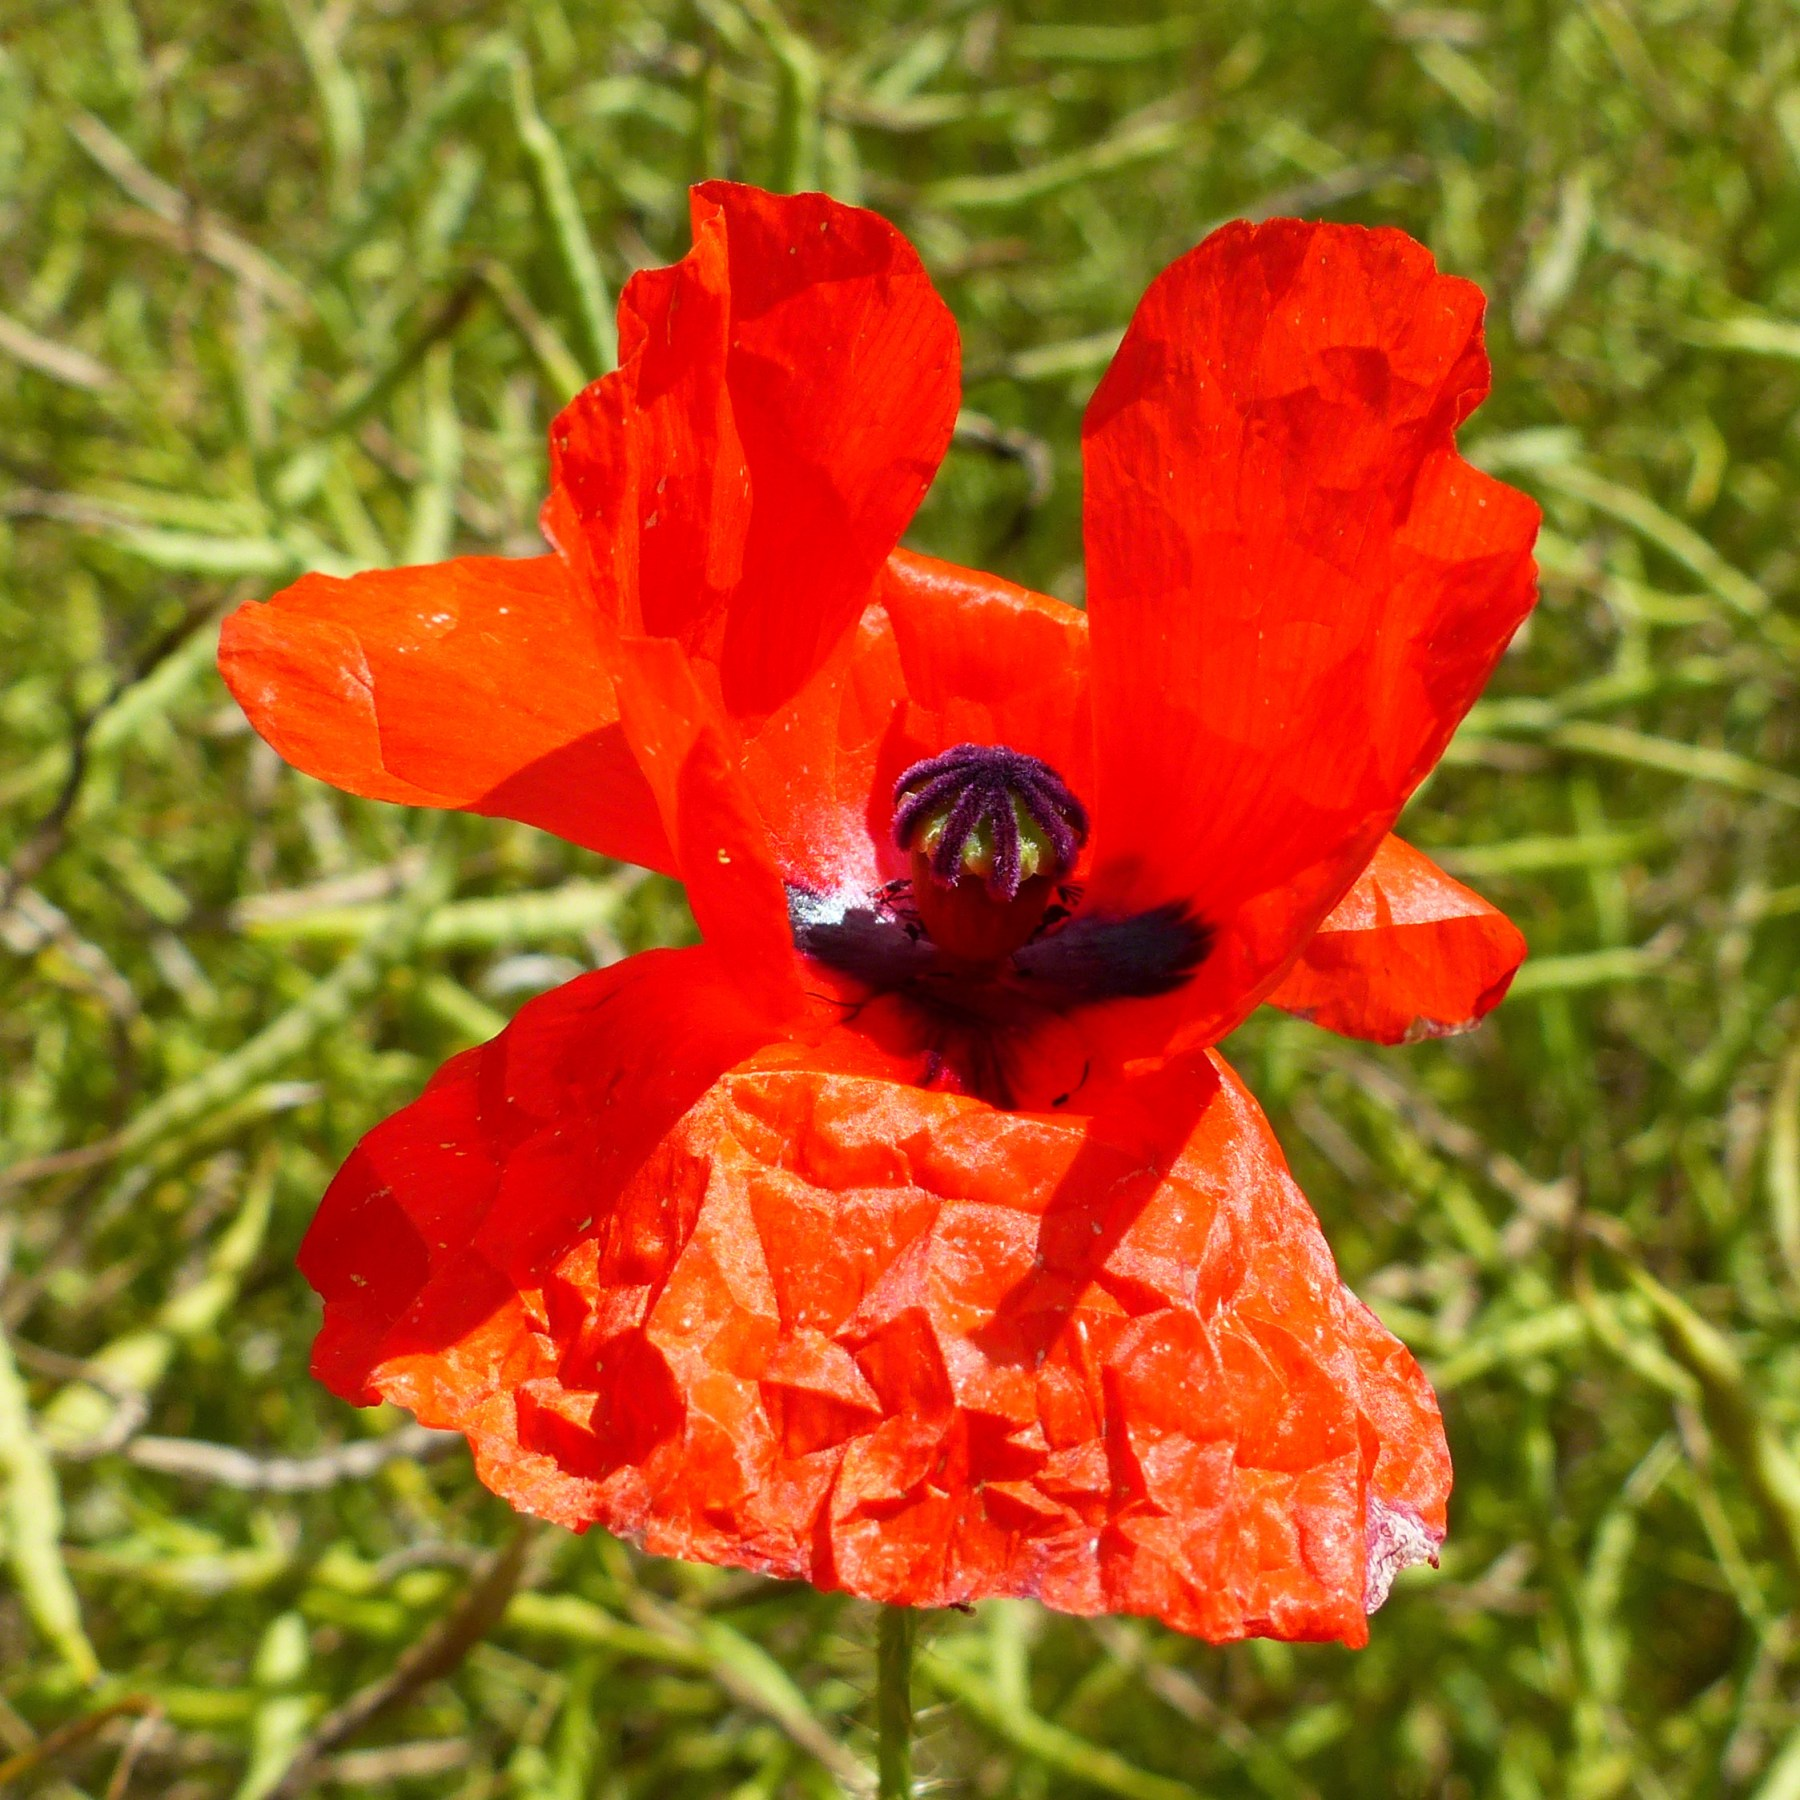 Red poppy flower among rapeseed pods in a field